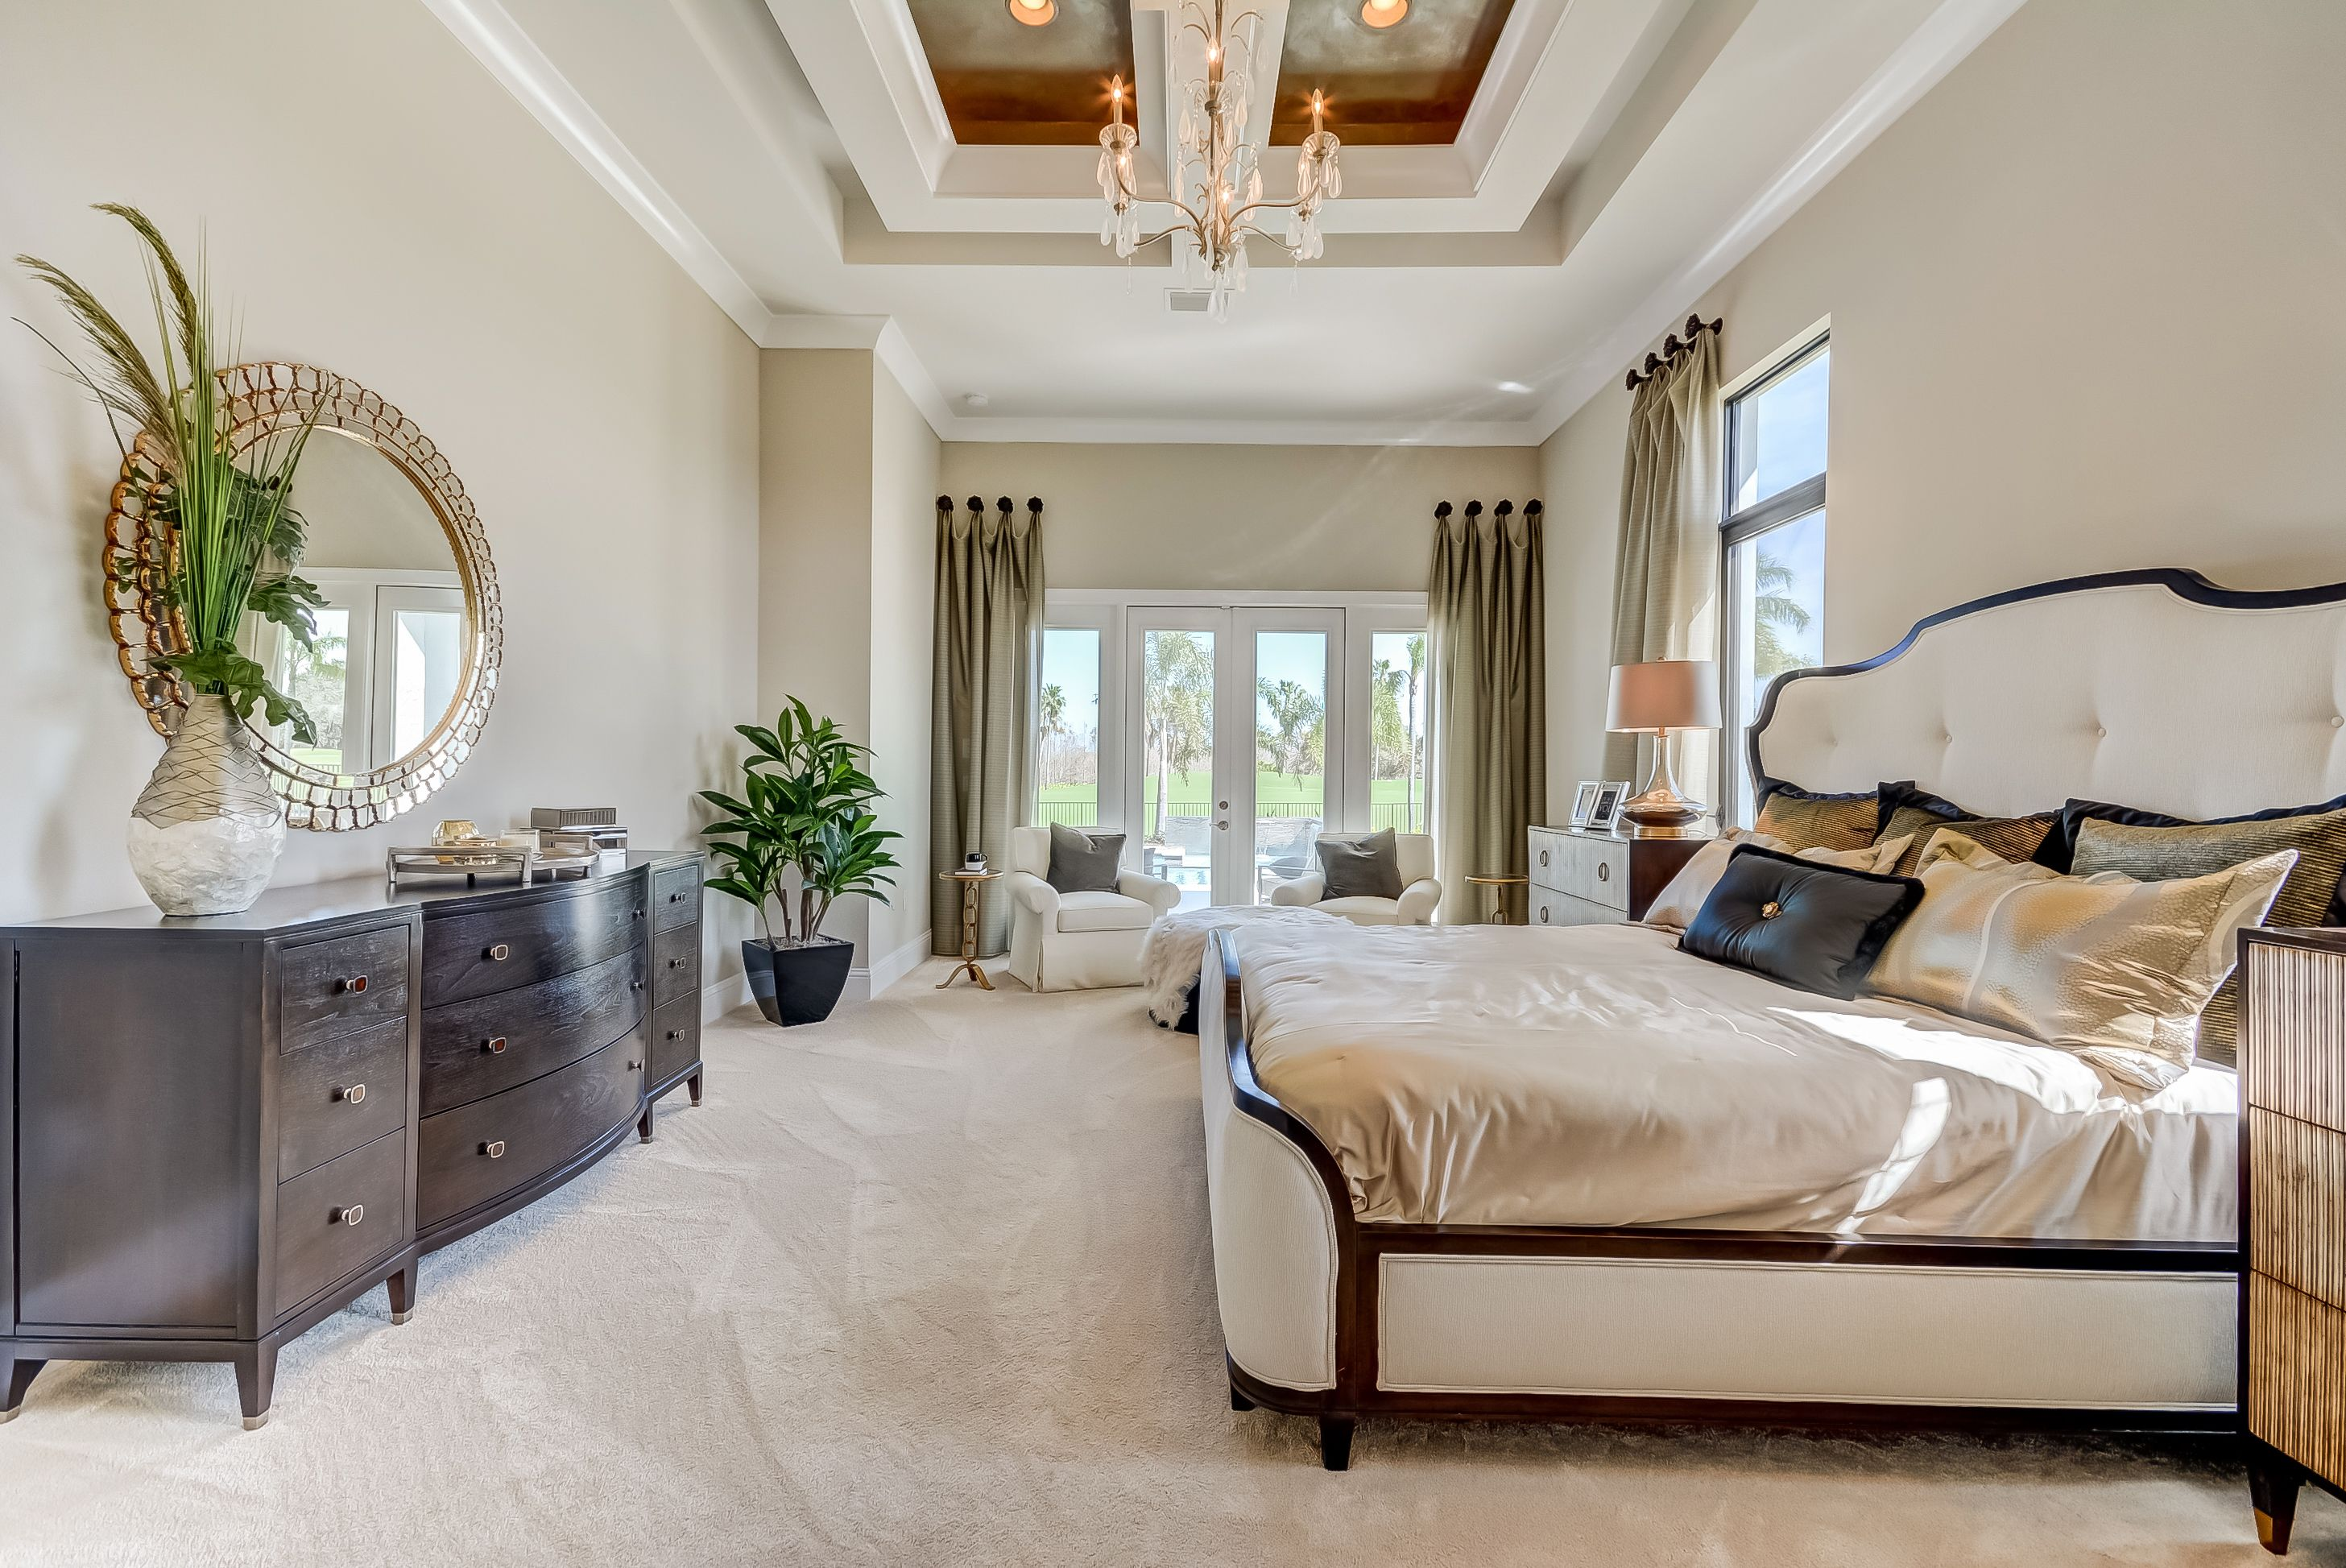 Bedroom featured in the Glenmore By Stock Development in Naples, FL